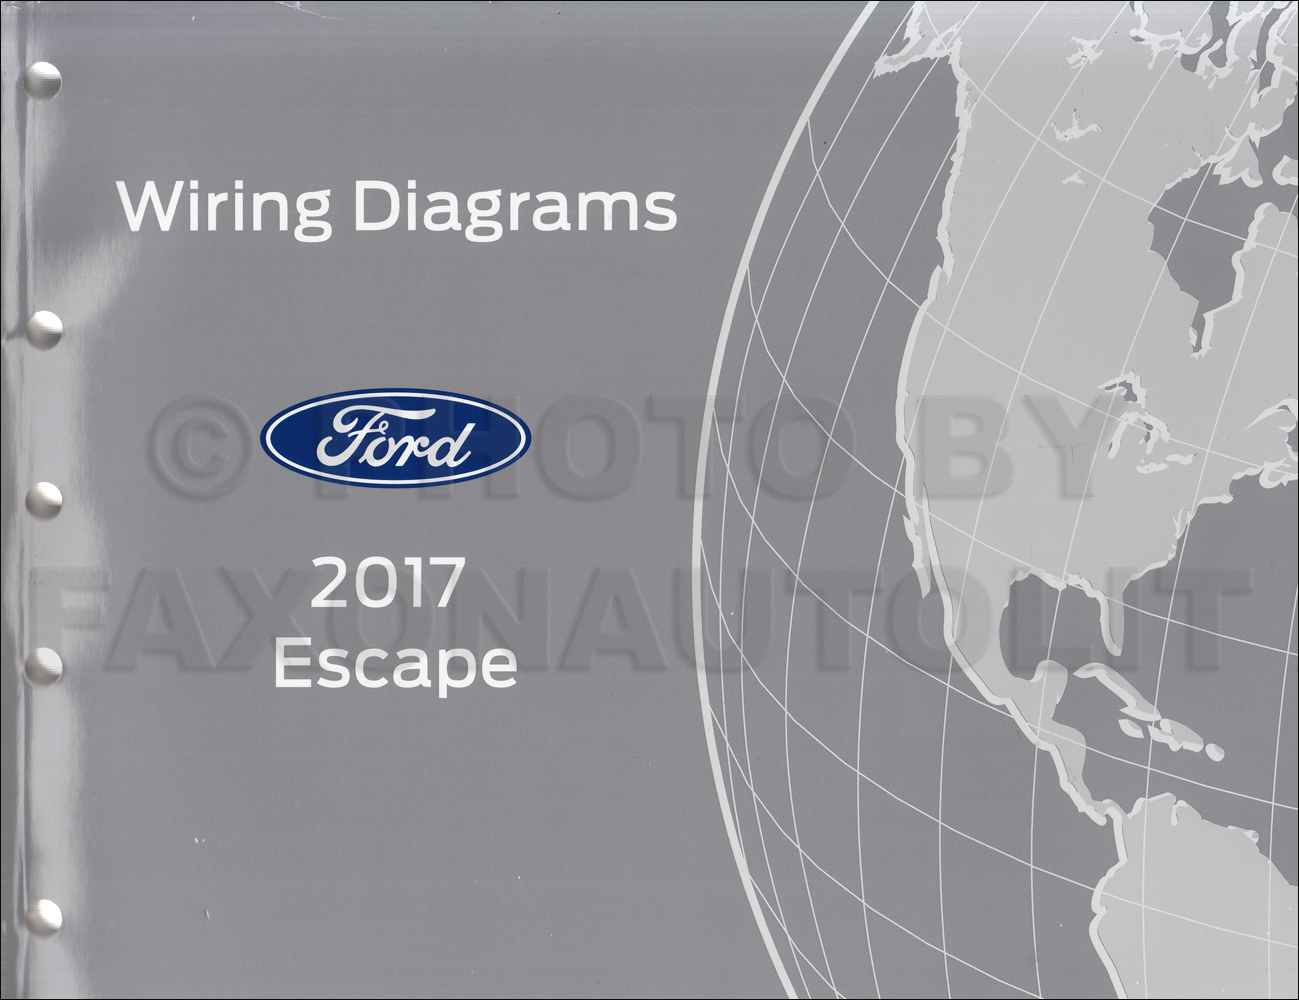 2017 Ford Escape Wiring Diagram Manual Original